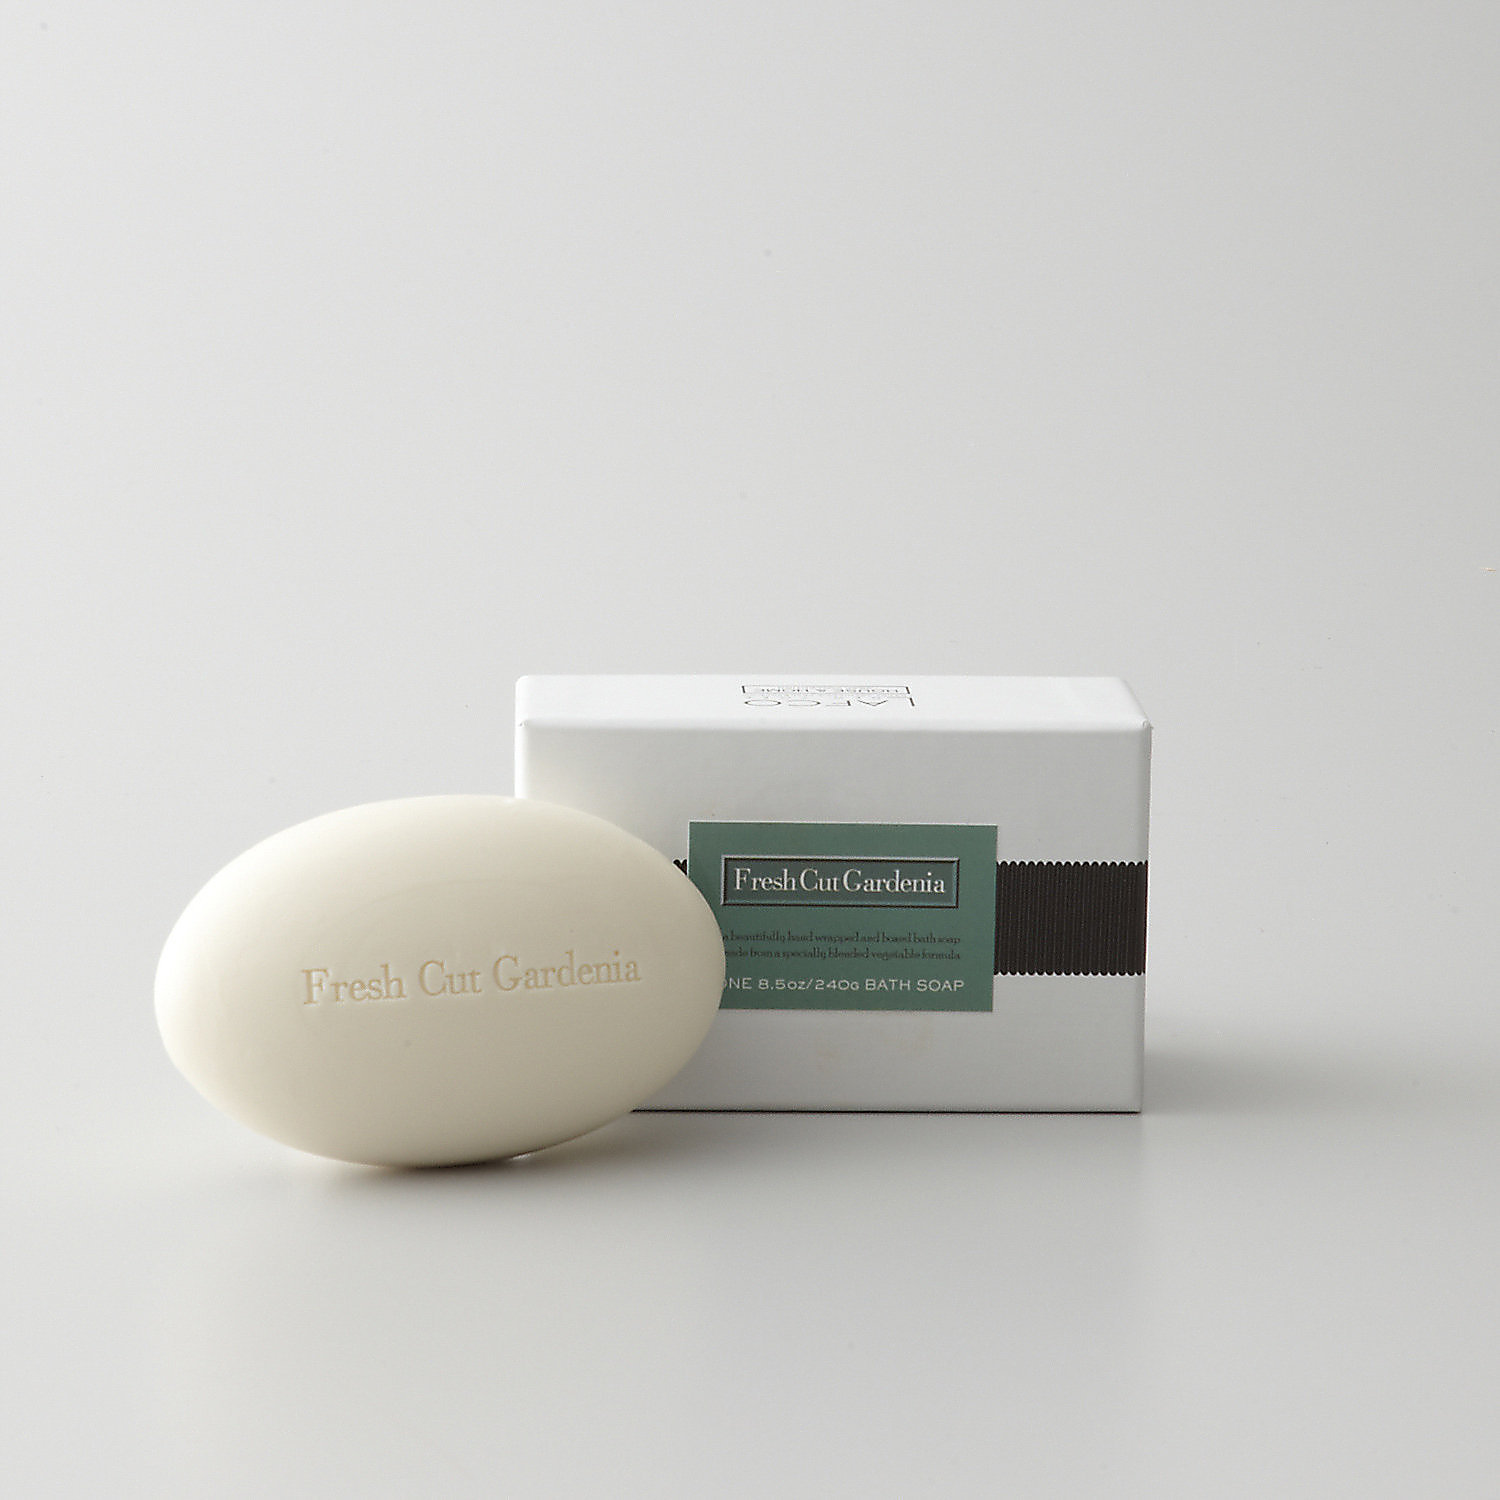 BATH SOAP - FRESH CUT GARDENIA